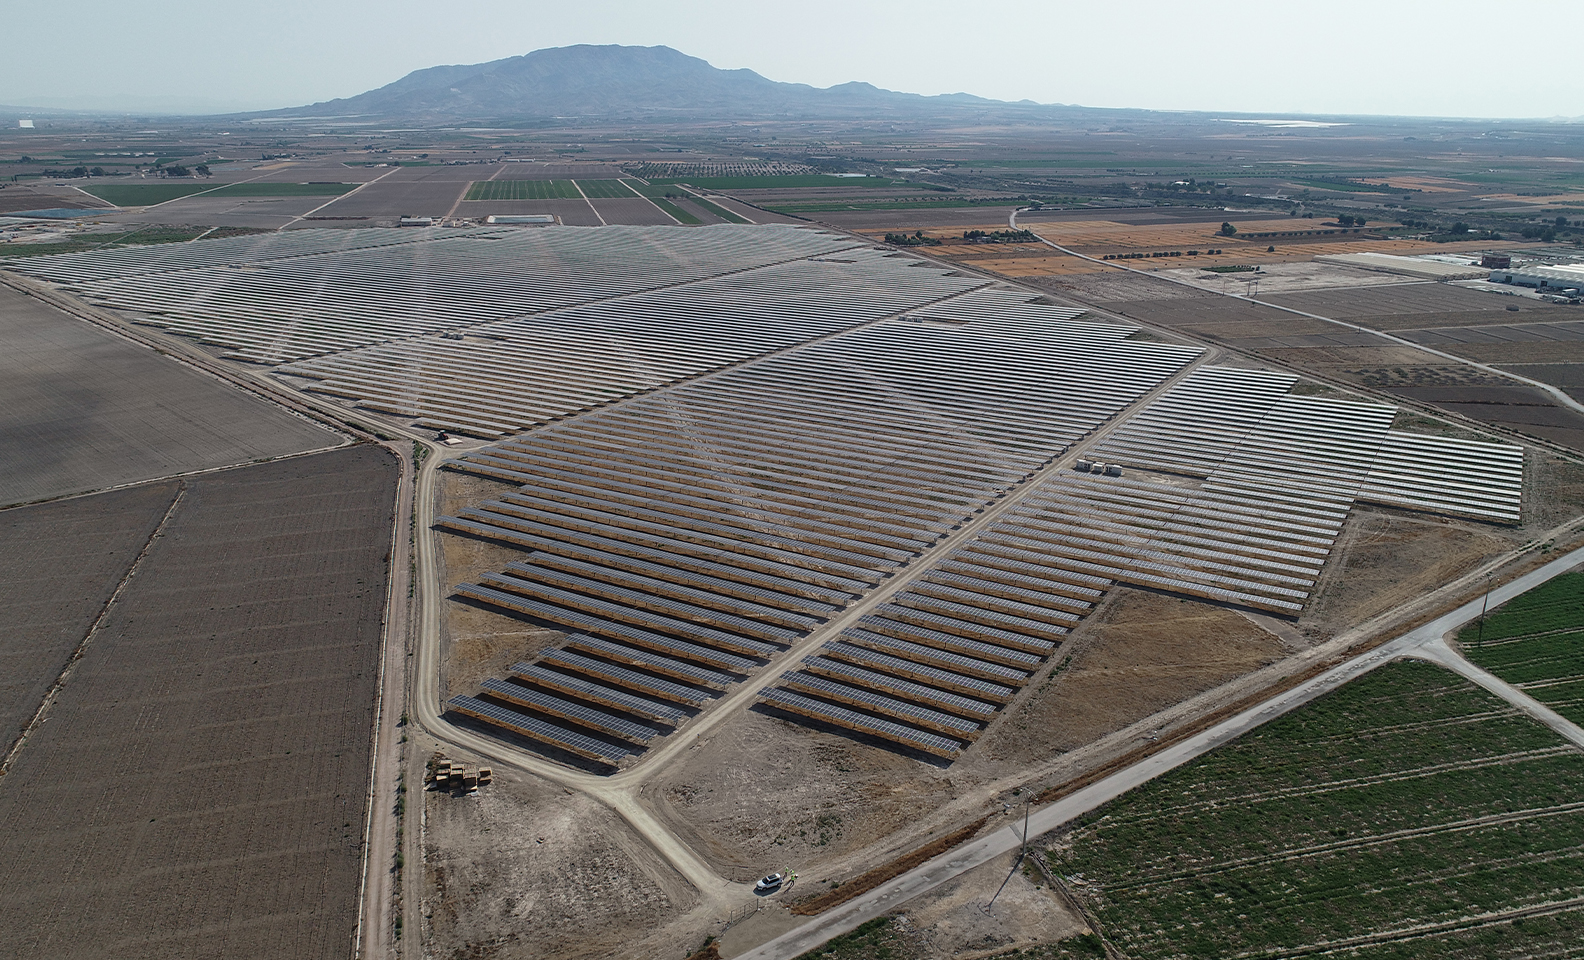 Aerial view of the Totana photovoltaic park in Murcia.